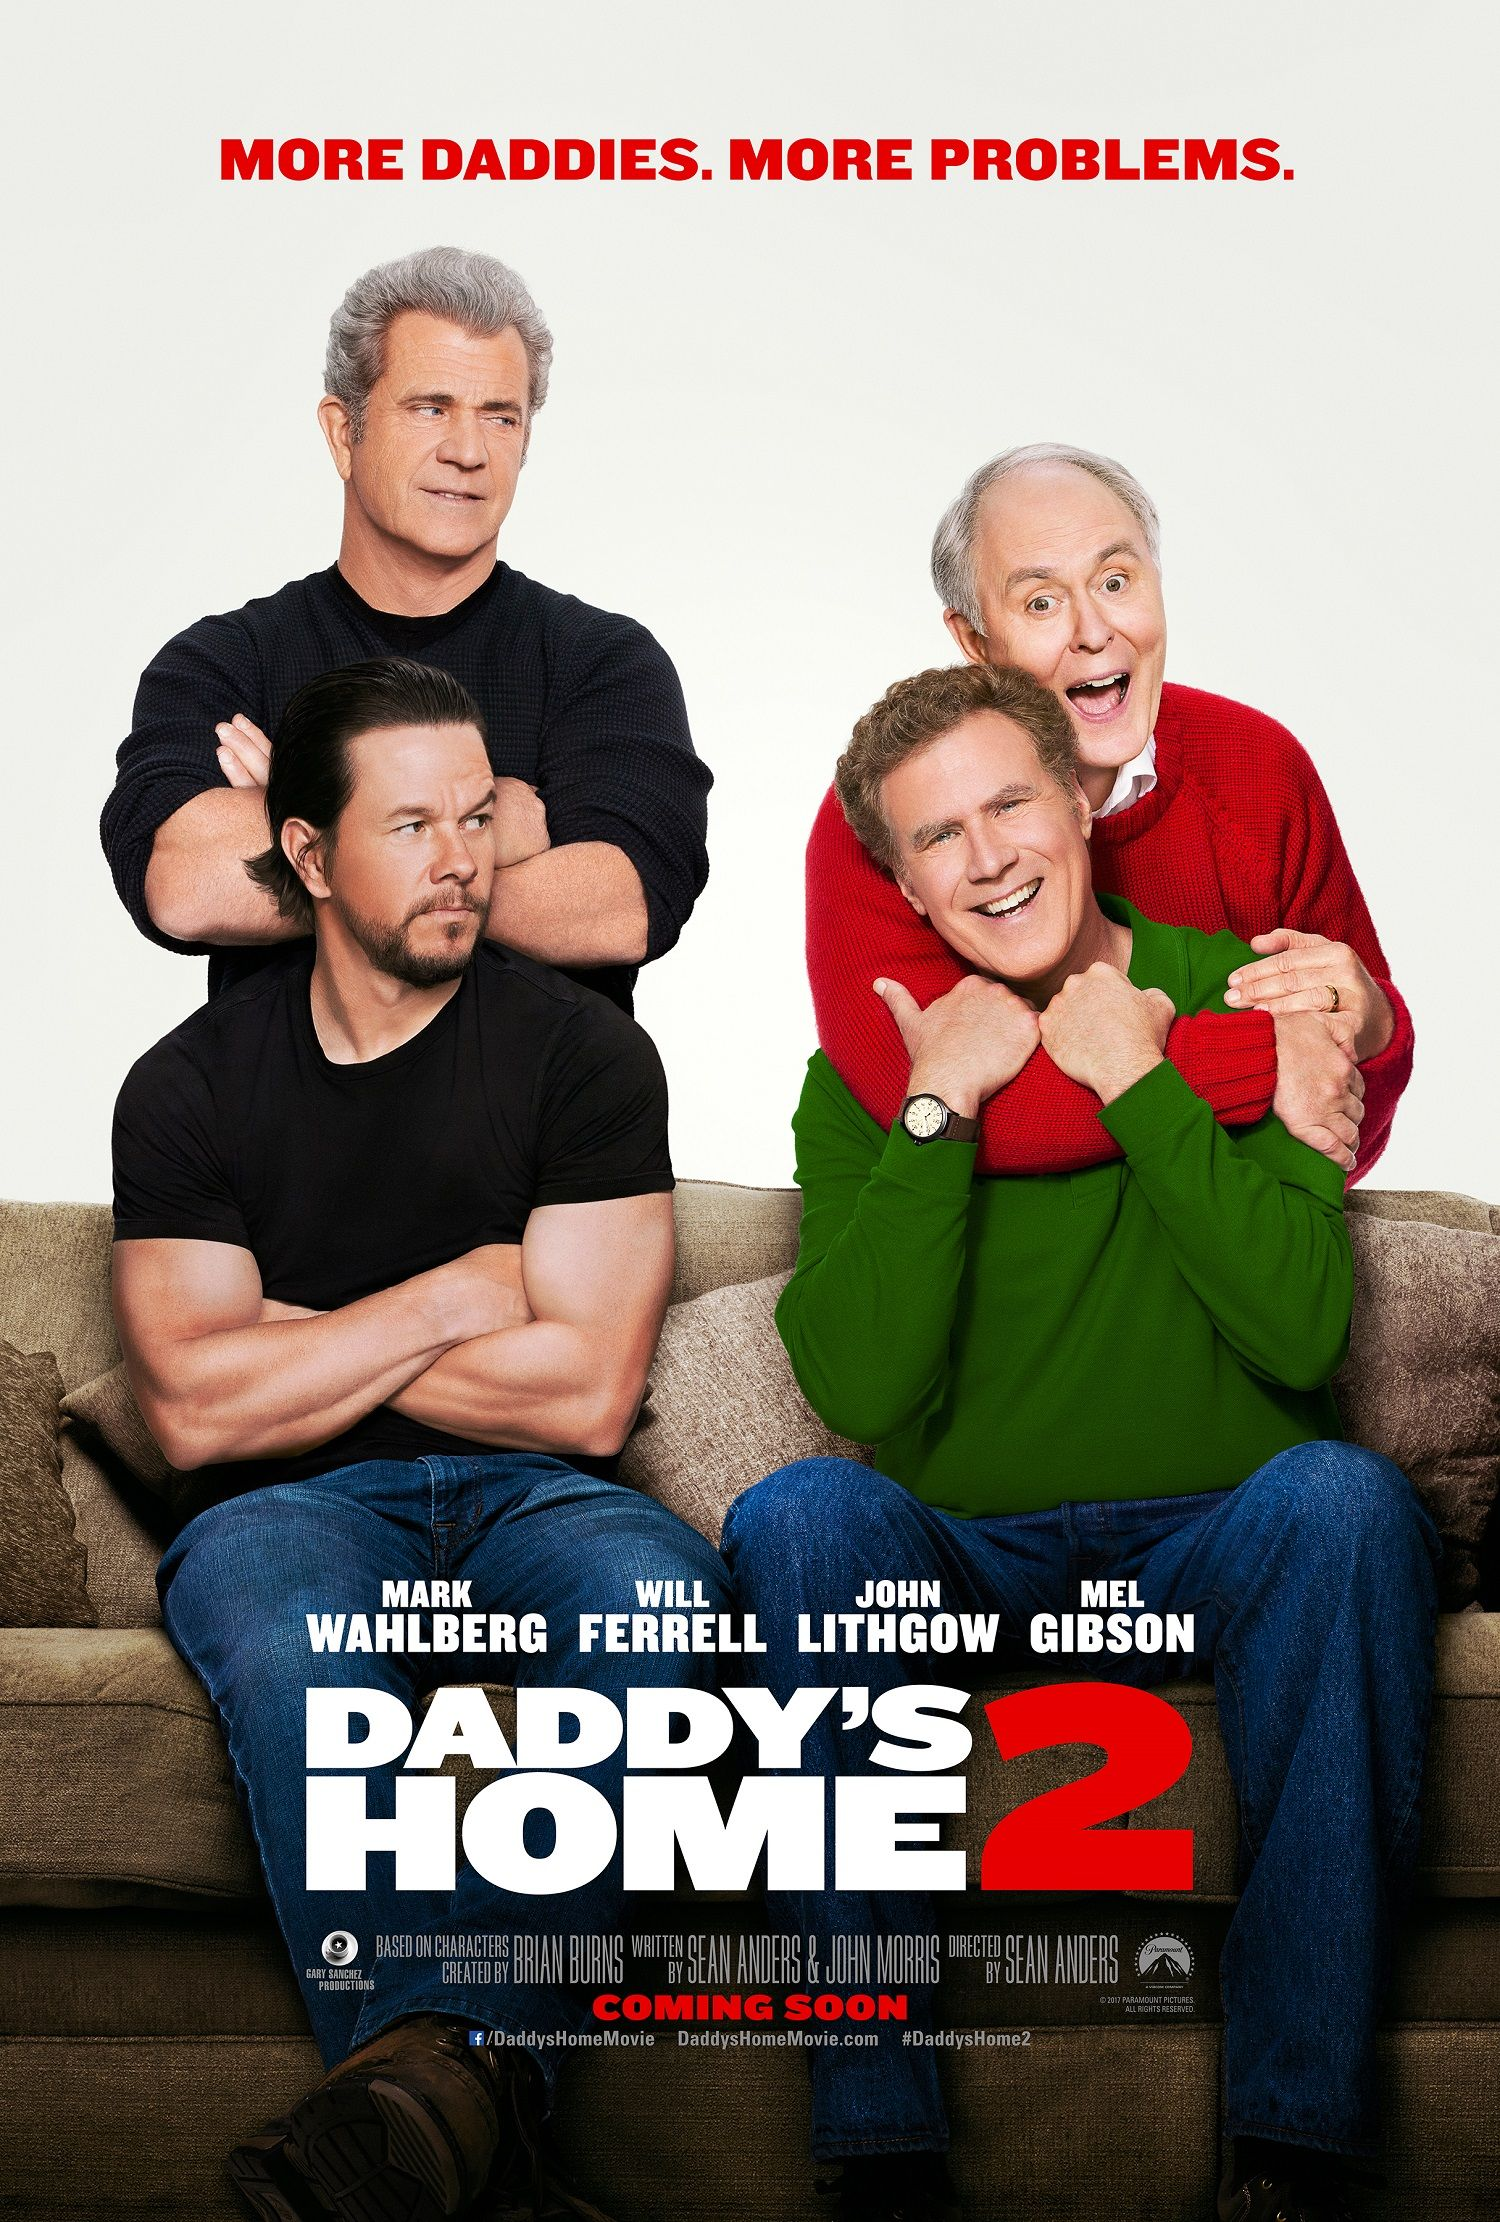 watch mel gibson and john lithgow in the daddy s home 2 trailer